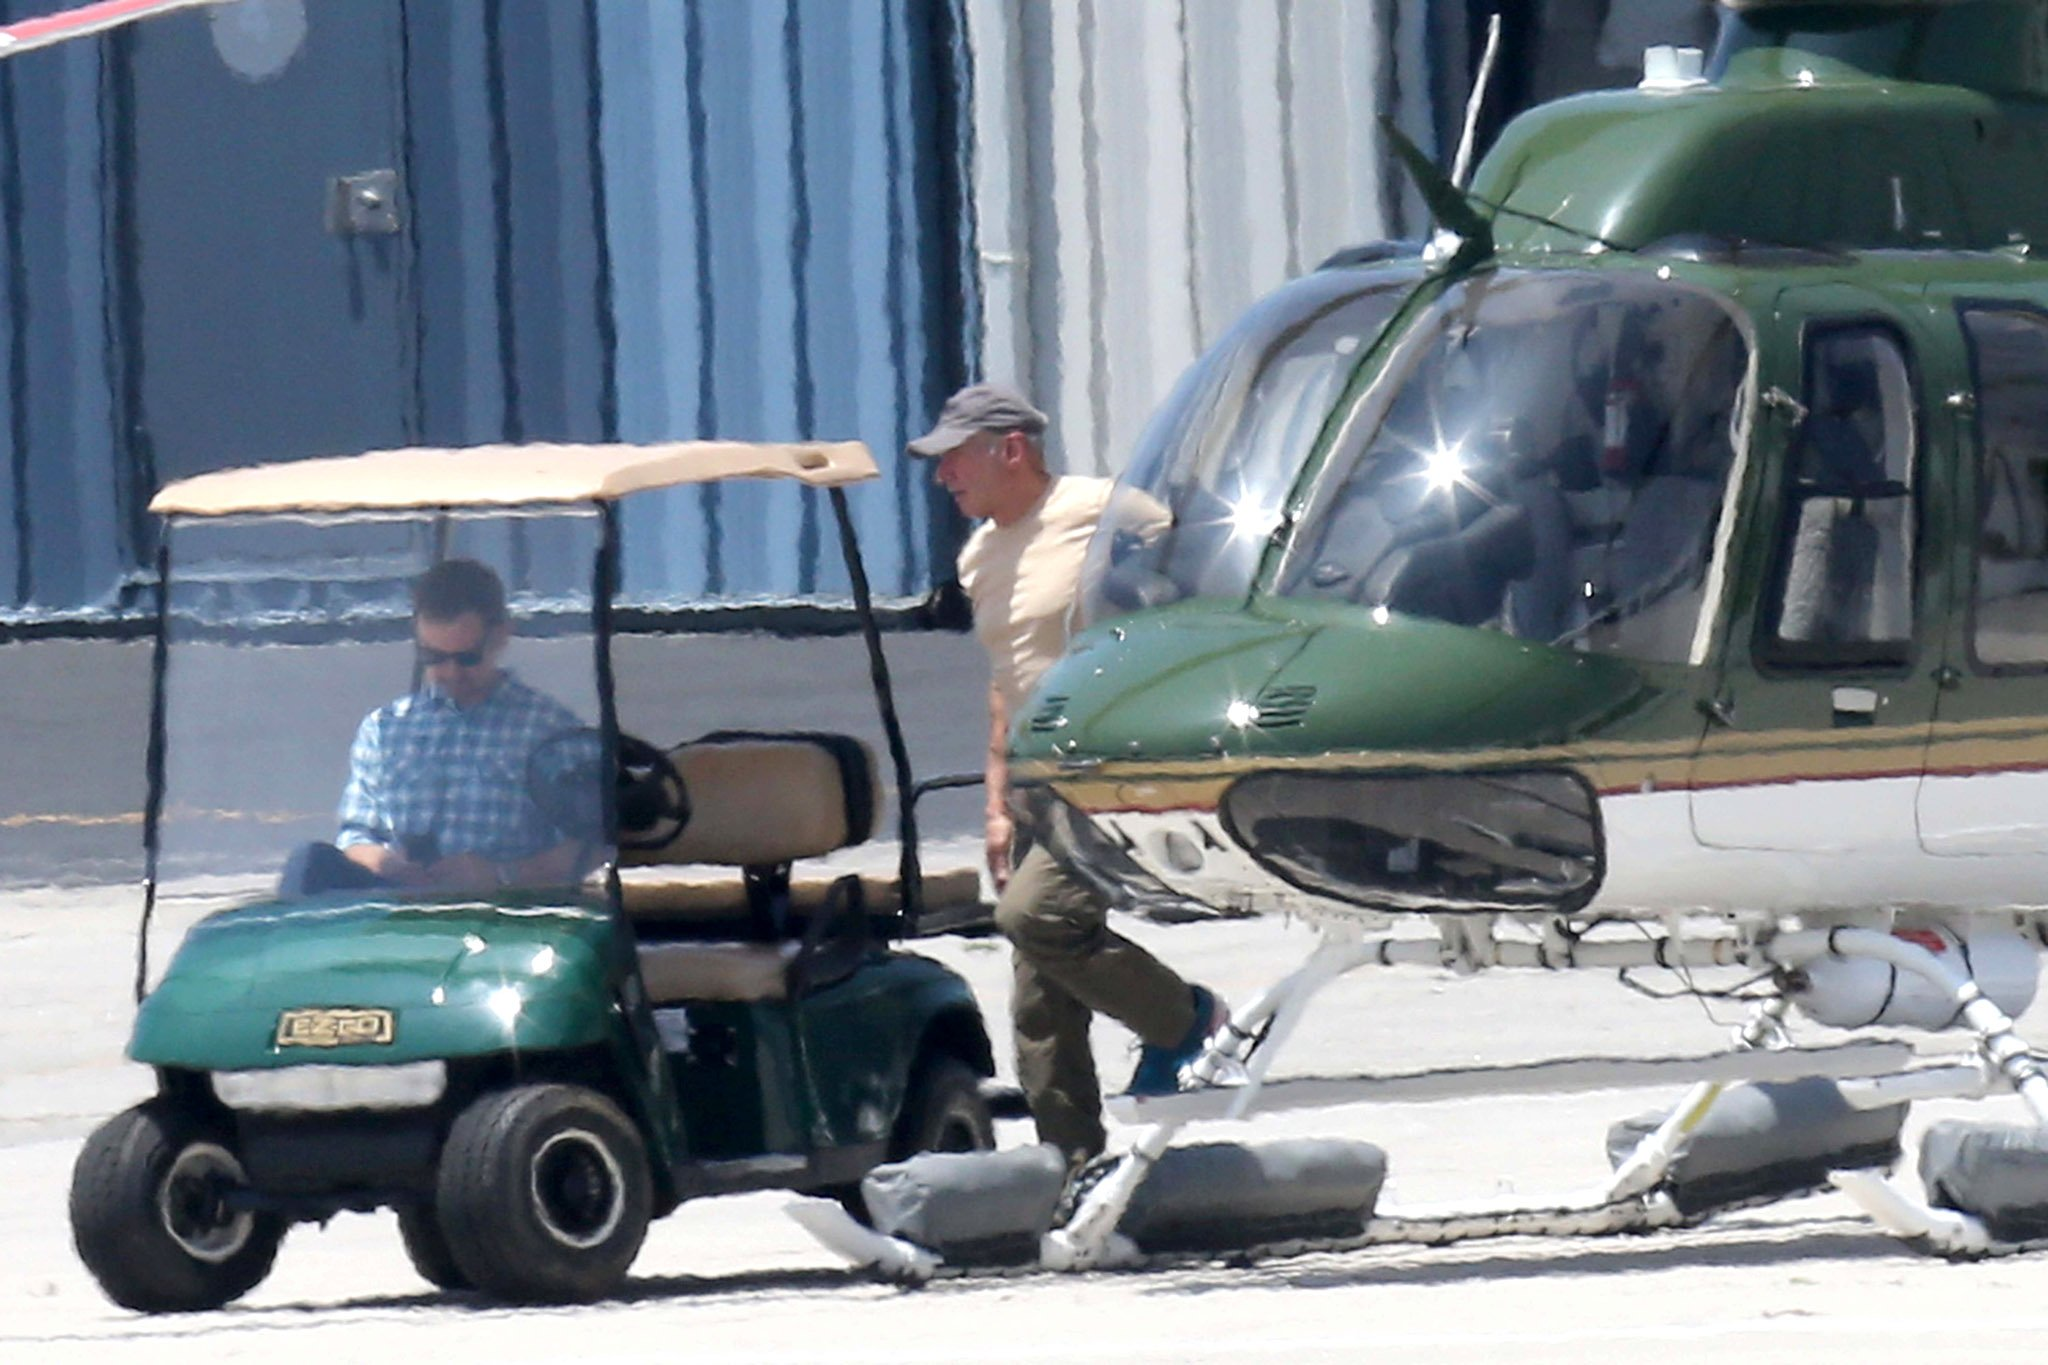 cb07f960-0578-11e5-9d6f-b55f067d0f0a_Harrison-Ford-Helicopter2